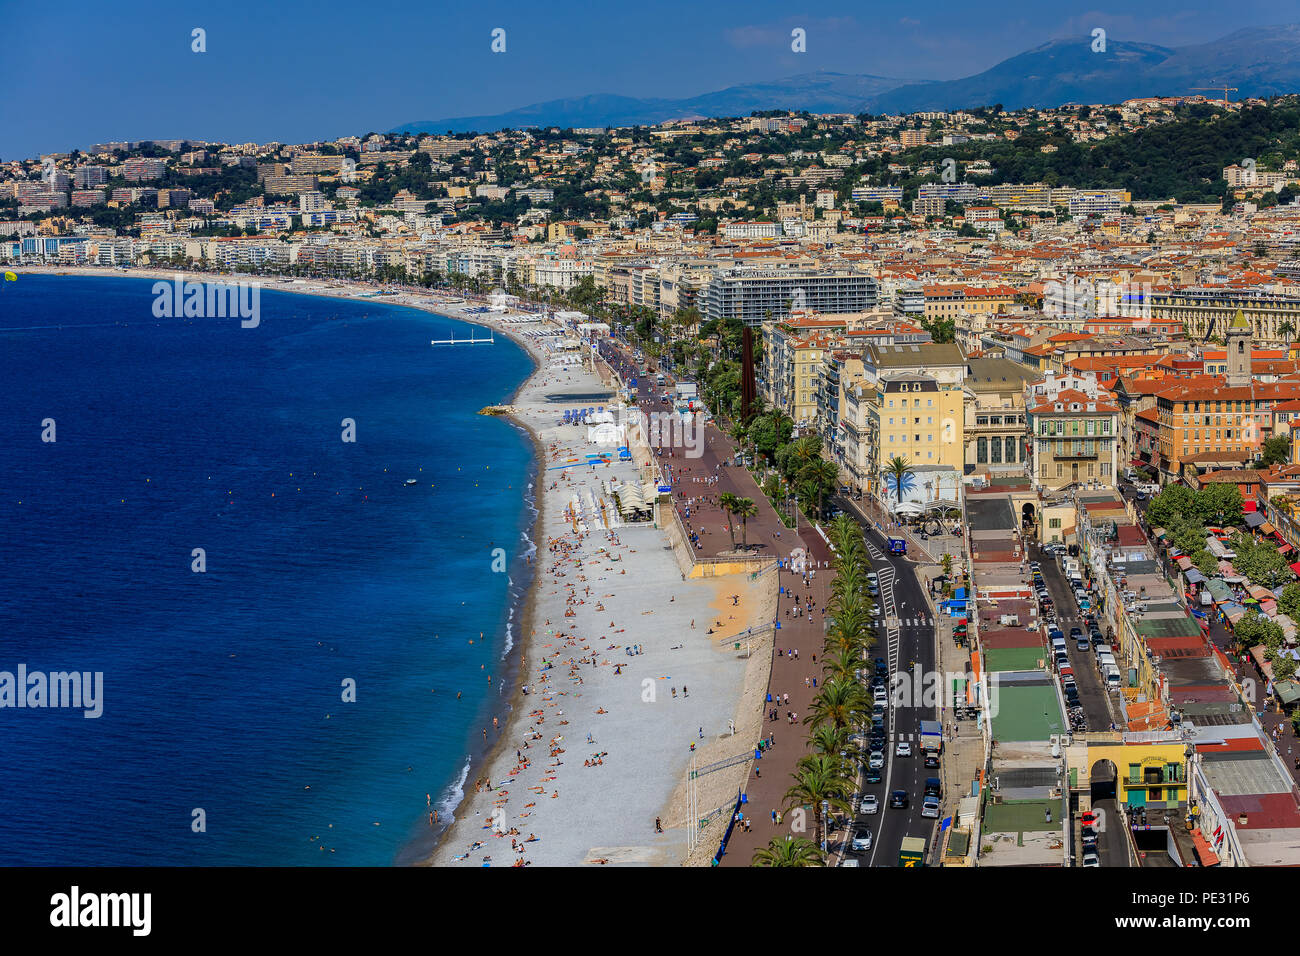 View of Nice cityscape onto the Old Town, Vieille Ville in Nice, French Riviera on the Mediterranean Sea, Cote d'Azur, France - Stock Image